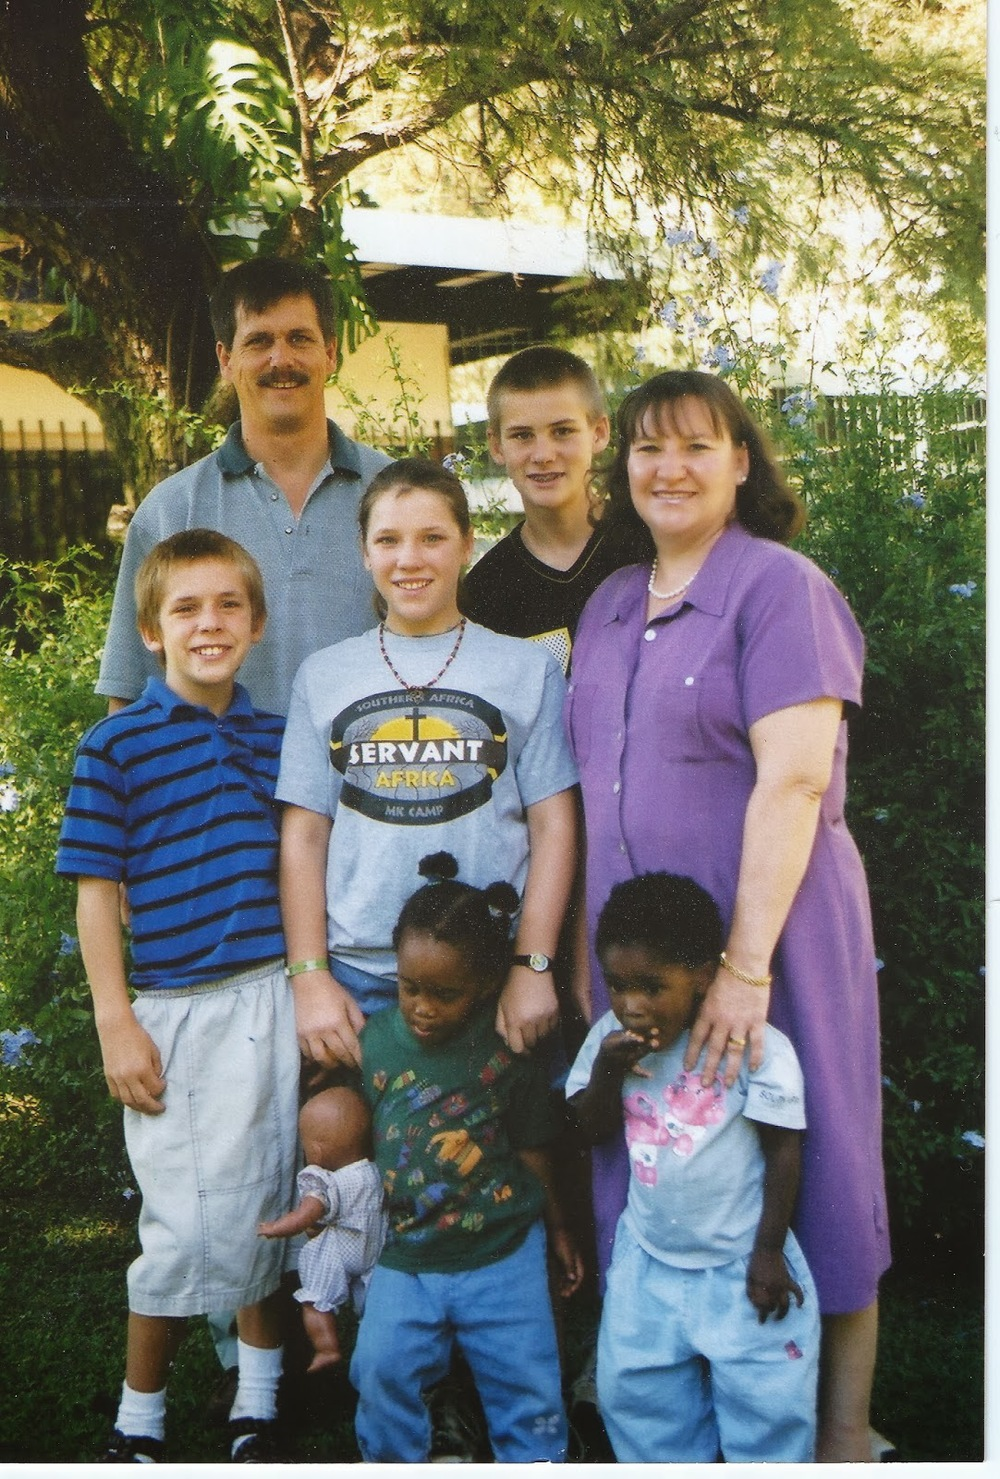 Family photo, South Africa 2003